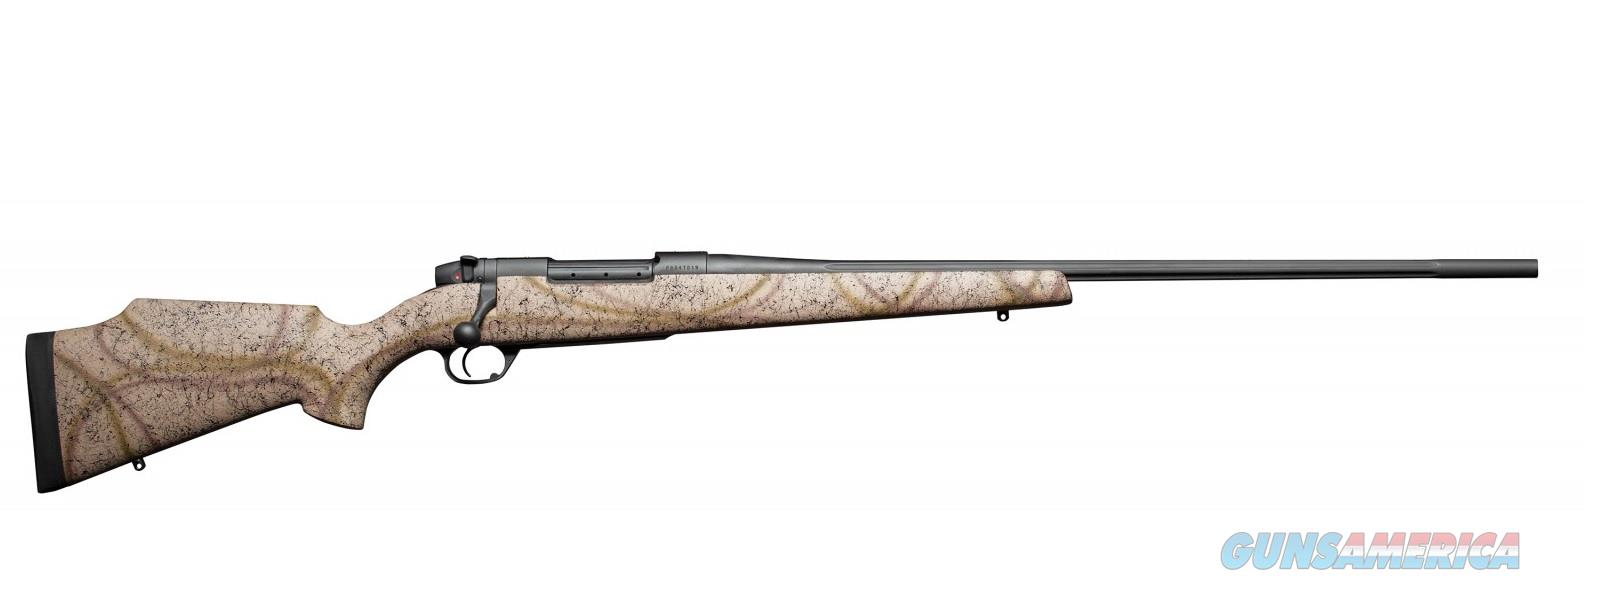 Weatherby Mark V Outfitter 6.5-300 Wby Mag MOTM653WR8B   Guns > Rifles > Weatherby Rifles > Sporting